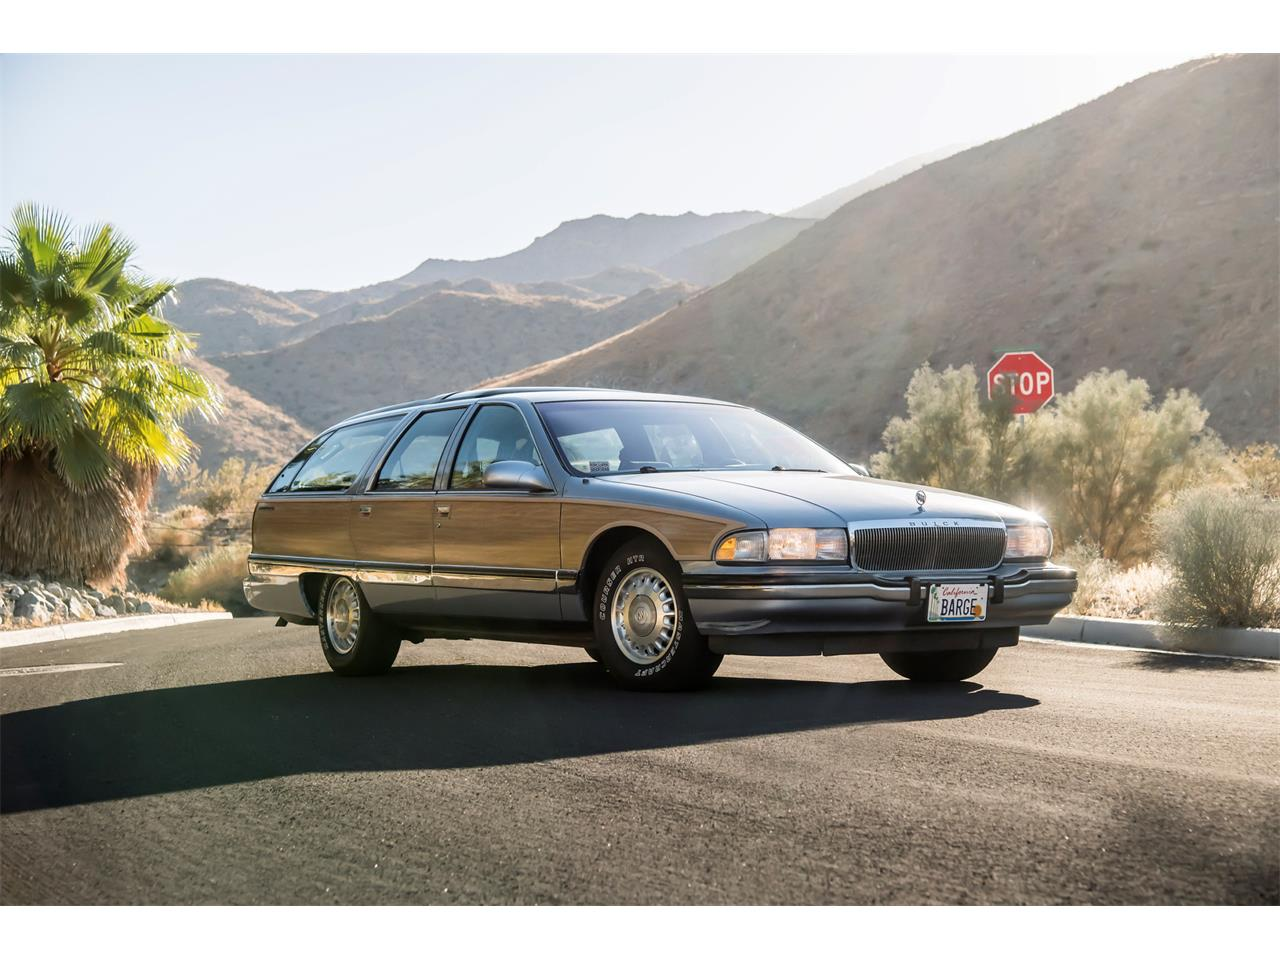 1995 Buick Roadmaster for sale in Cathedral City, CA – photo 4